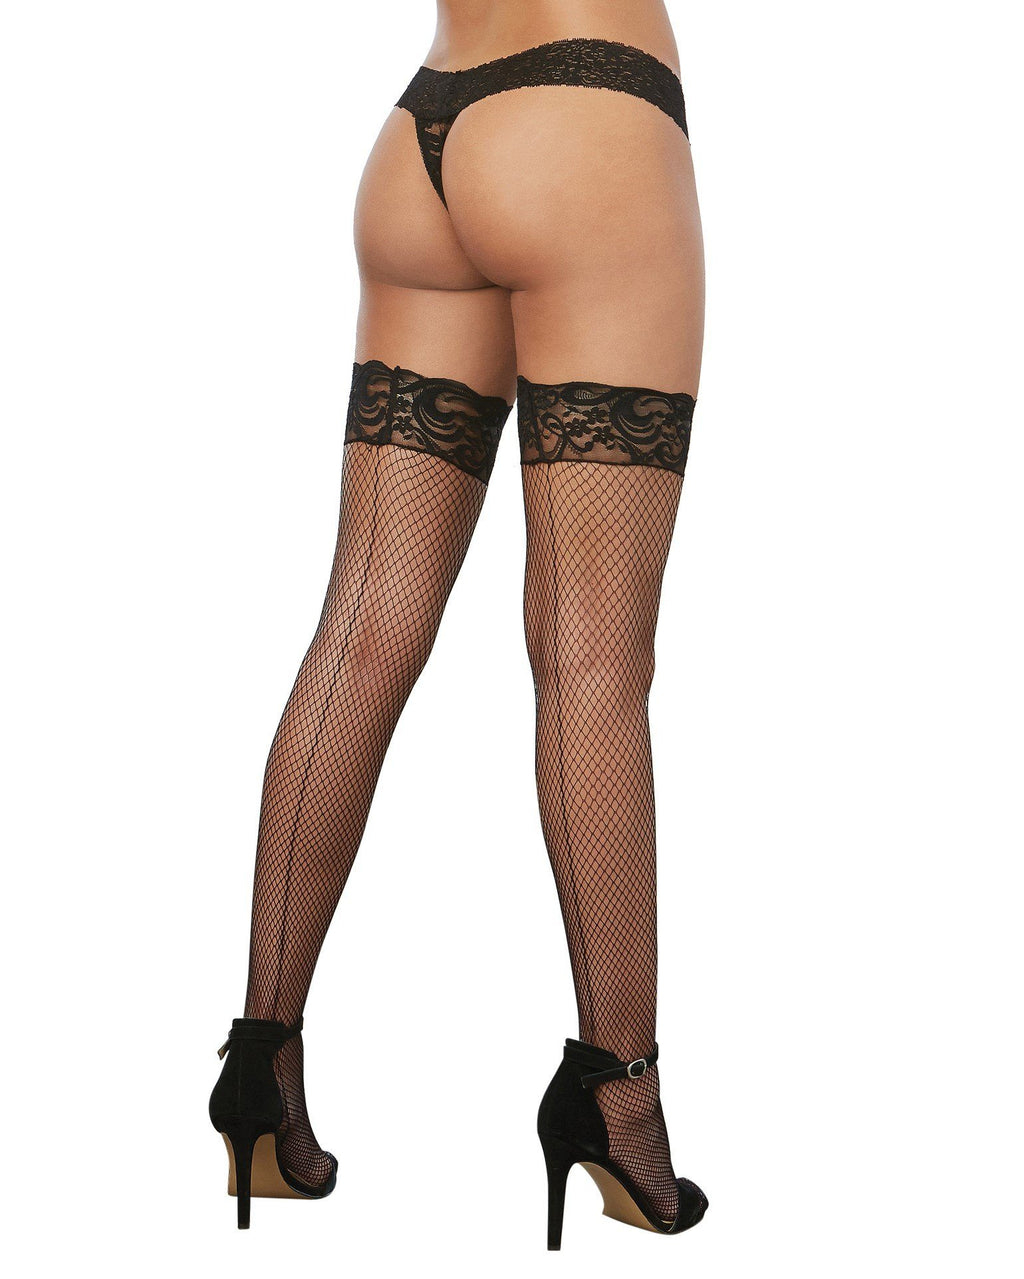 Laced Stay-up Fishnet Thigh High Thigh Highs Dreamgirl International One Size Black